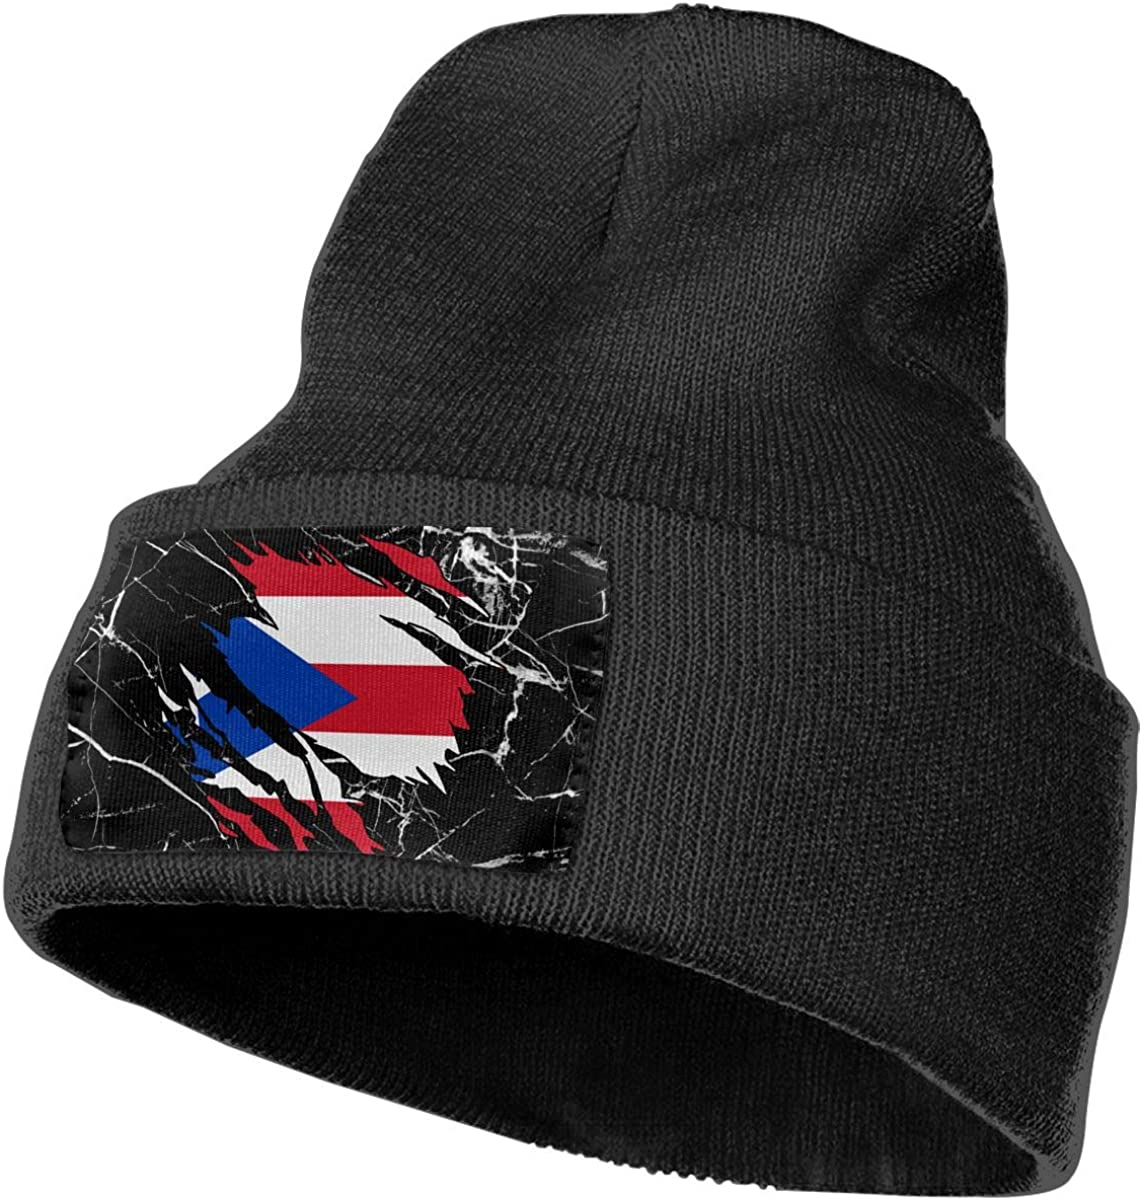 Ripped Puerto Rico Flag Unisex Solid Color Knit Beanie Hat Stretchy /& Soft Winter Ski Knit Cap